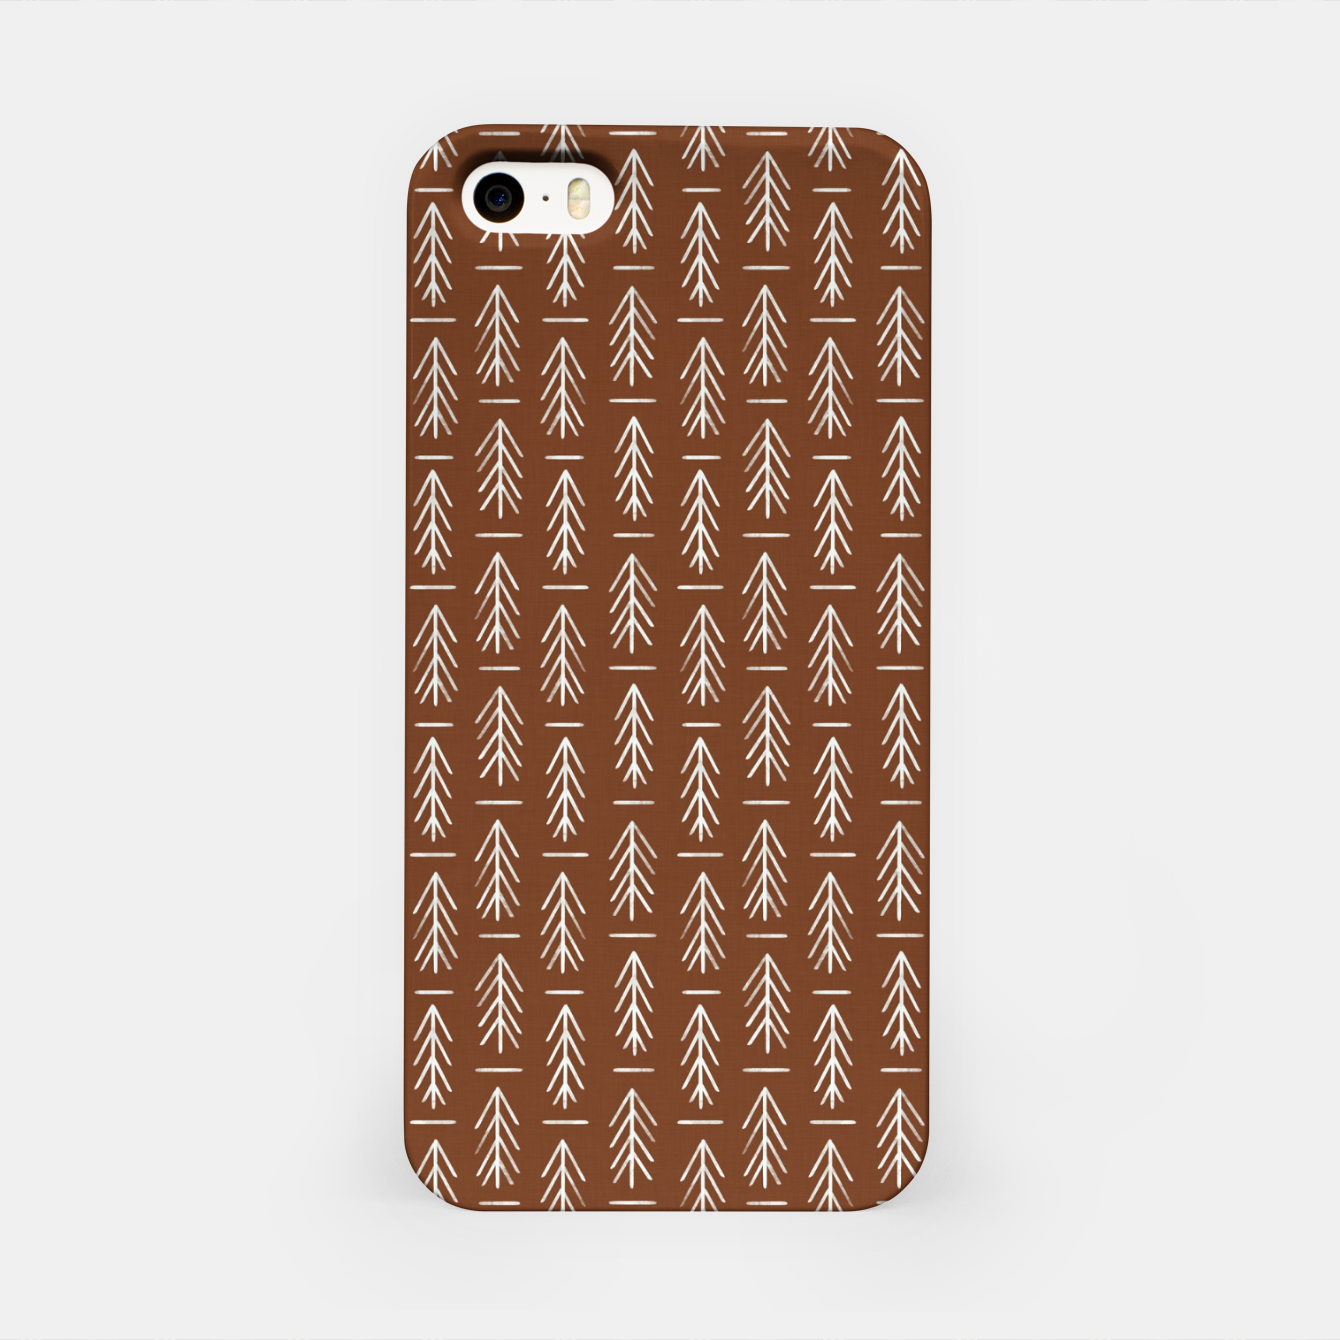 Zdjęcie Simple Winter Pine Trees Hand-drawn Pattern in Cinnamon and Ivory Color, Linen Texture iPhone Case - Live Heroes